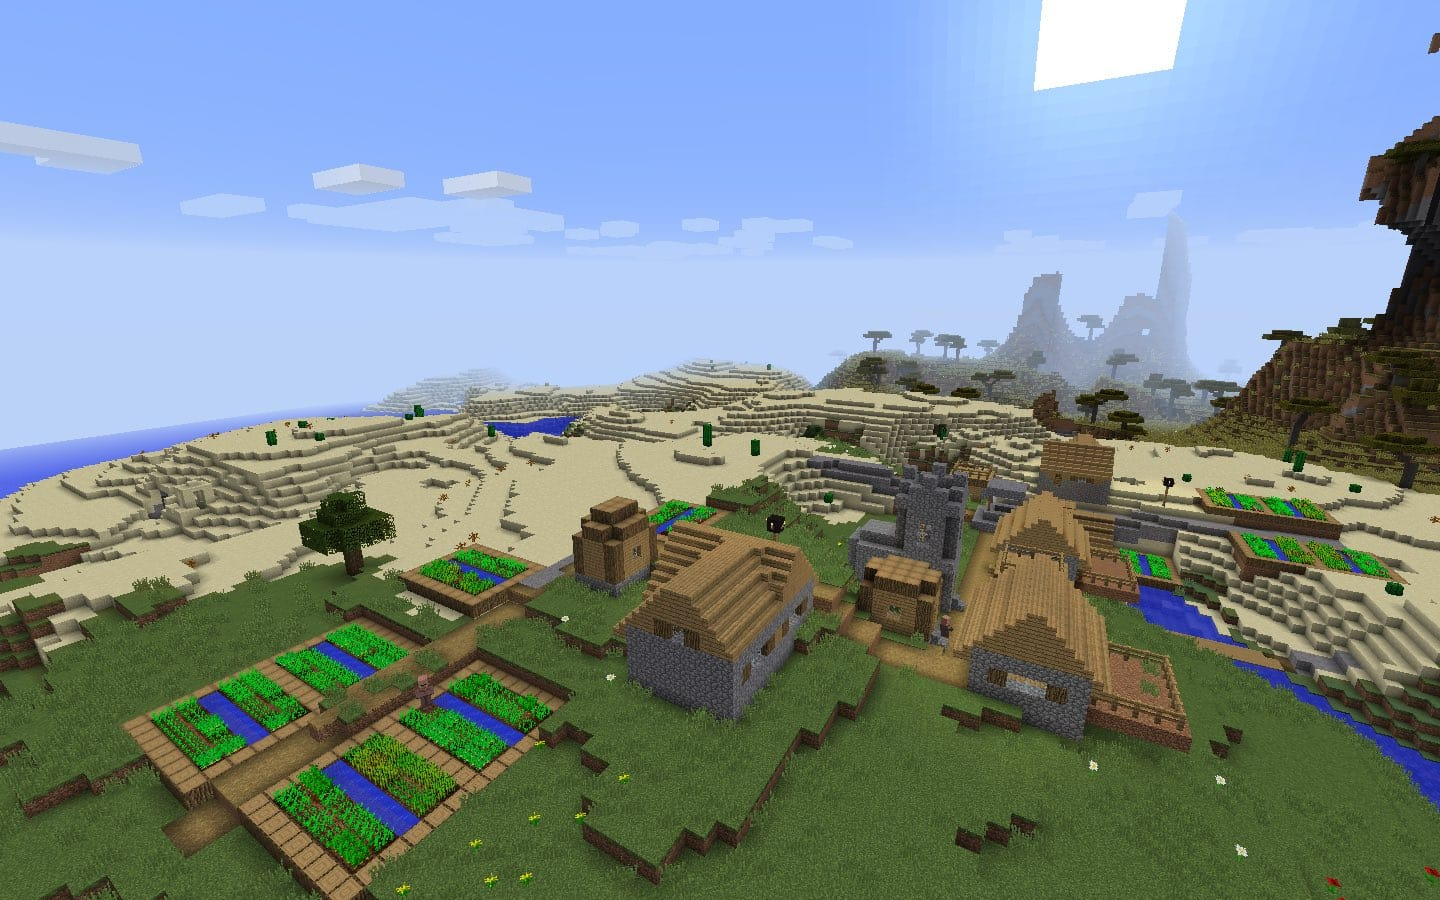 Blacksmith Village with Iron Armor